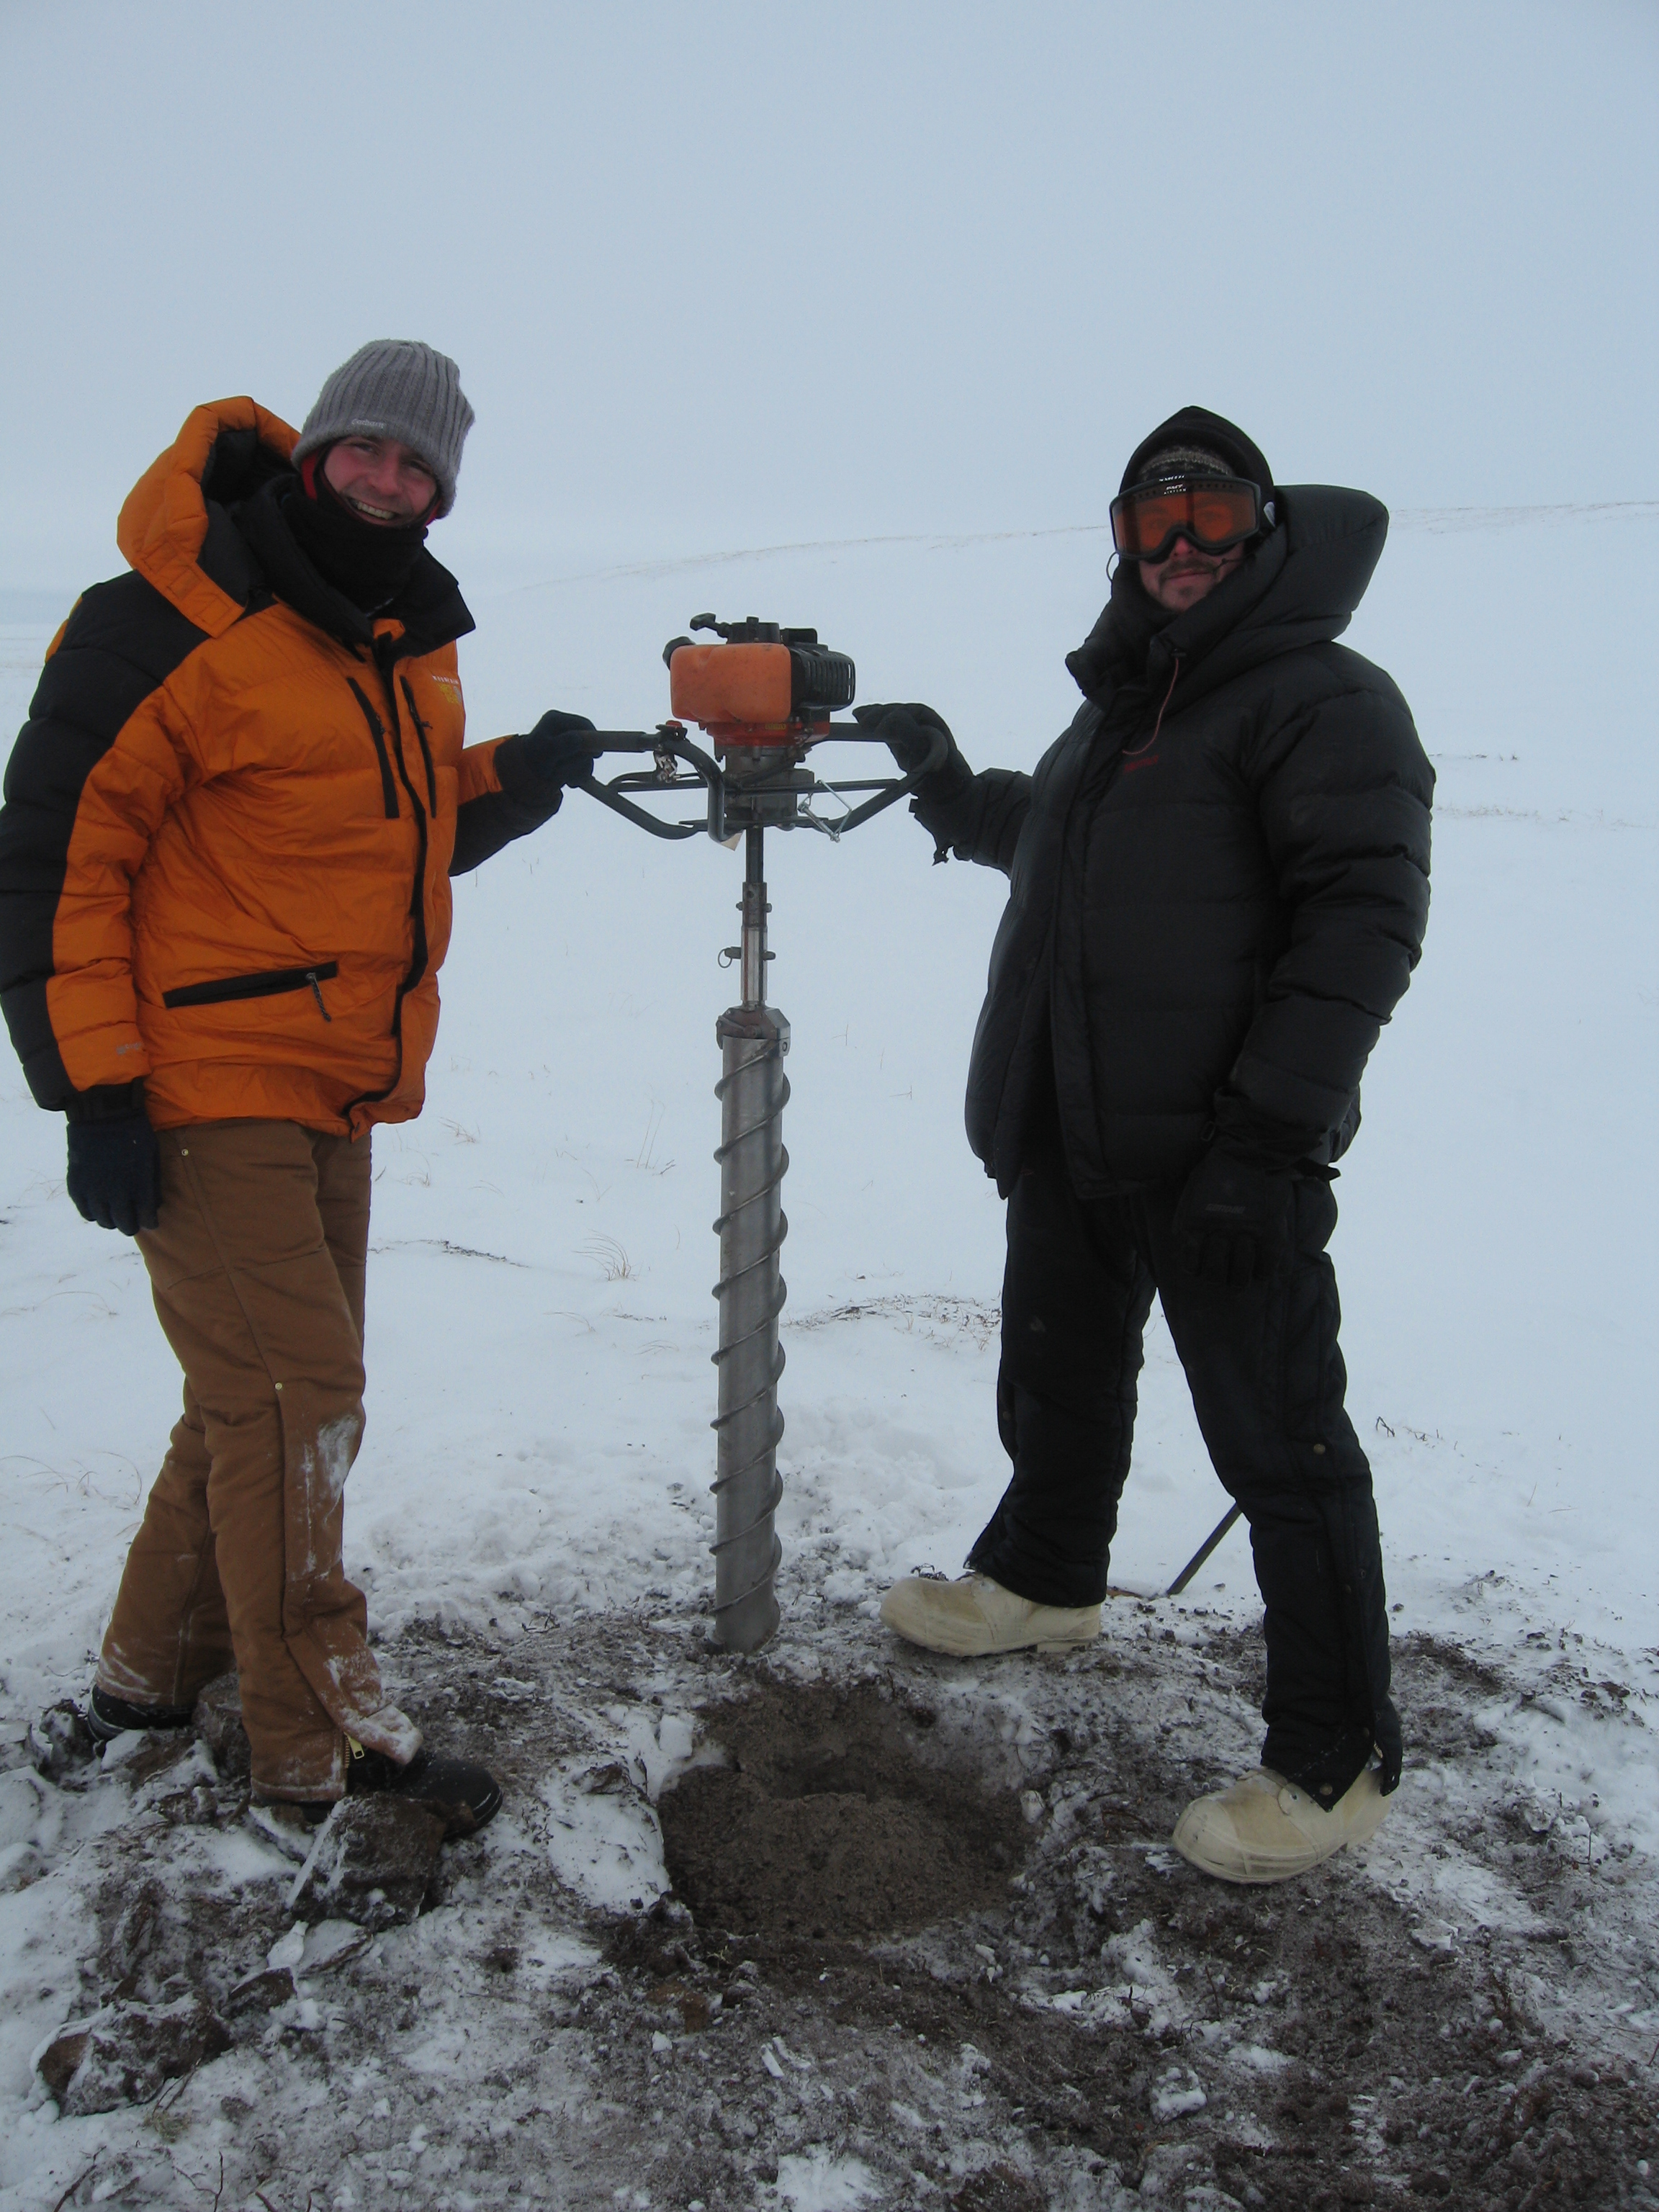 Guido Grosse (left) and Ben Jones take a break from extracting sediment cores as part of the Walter research project.